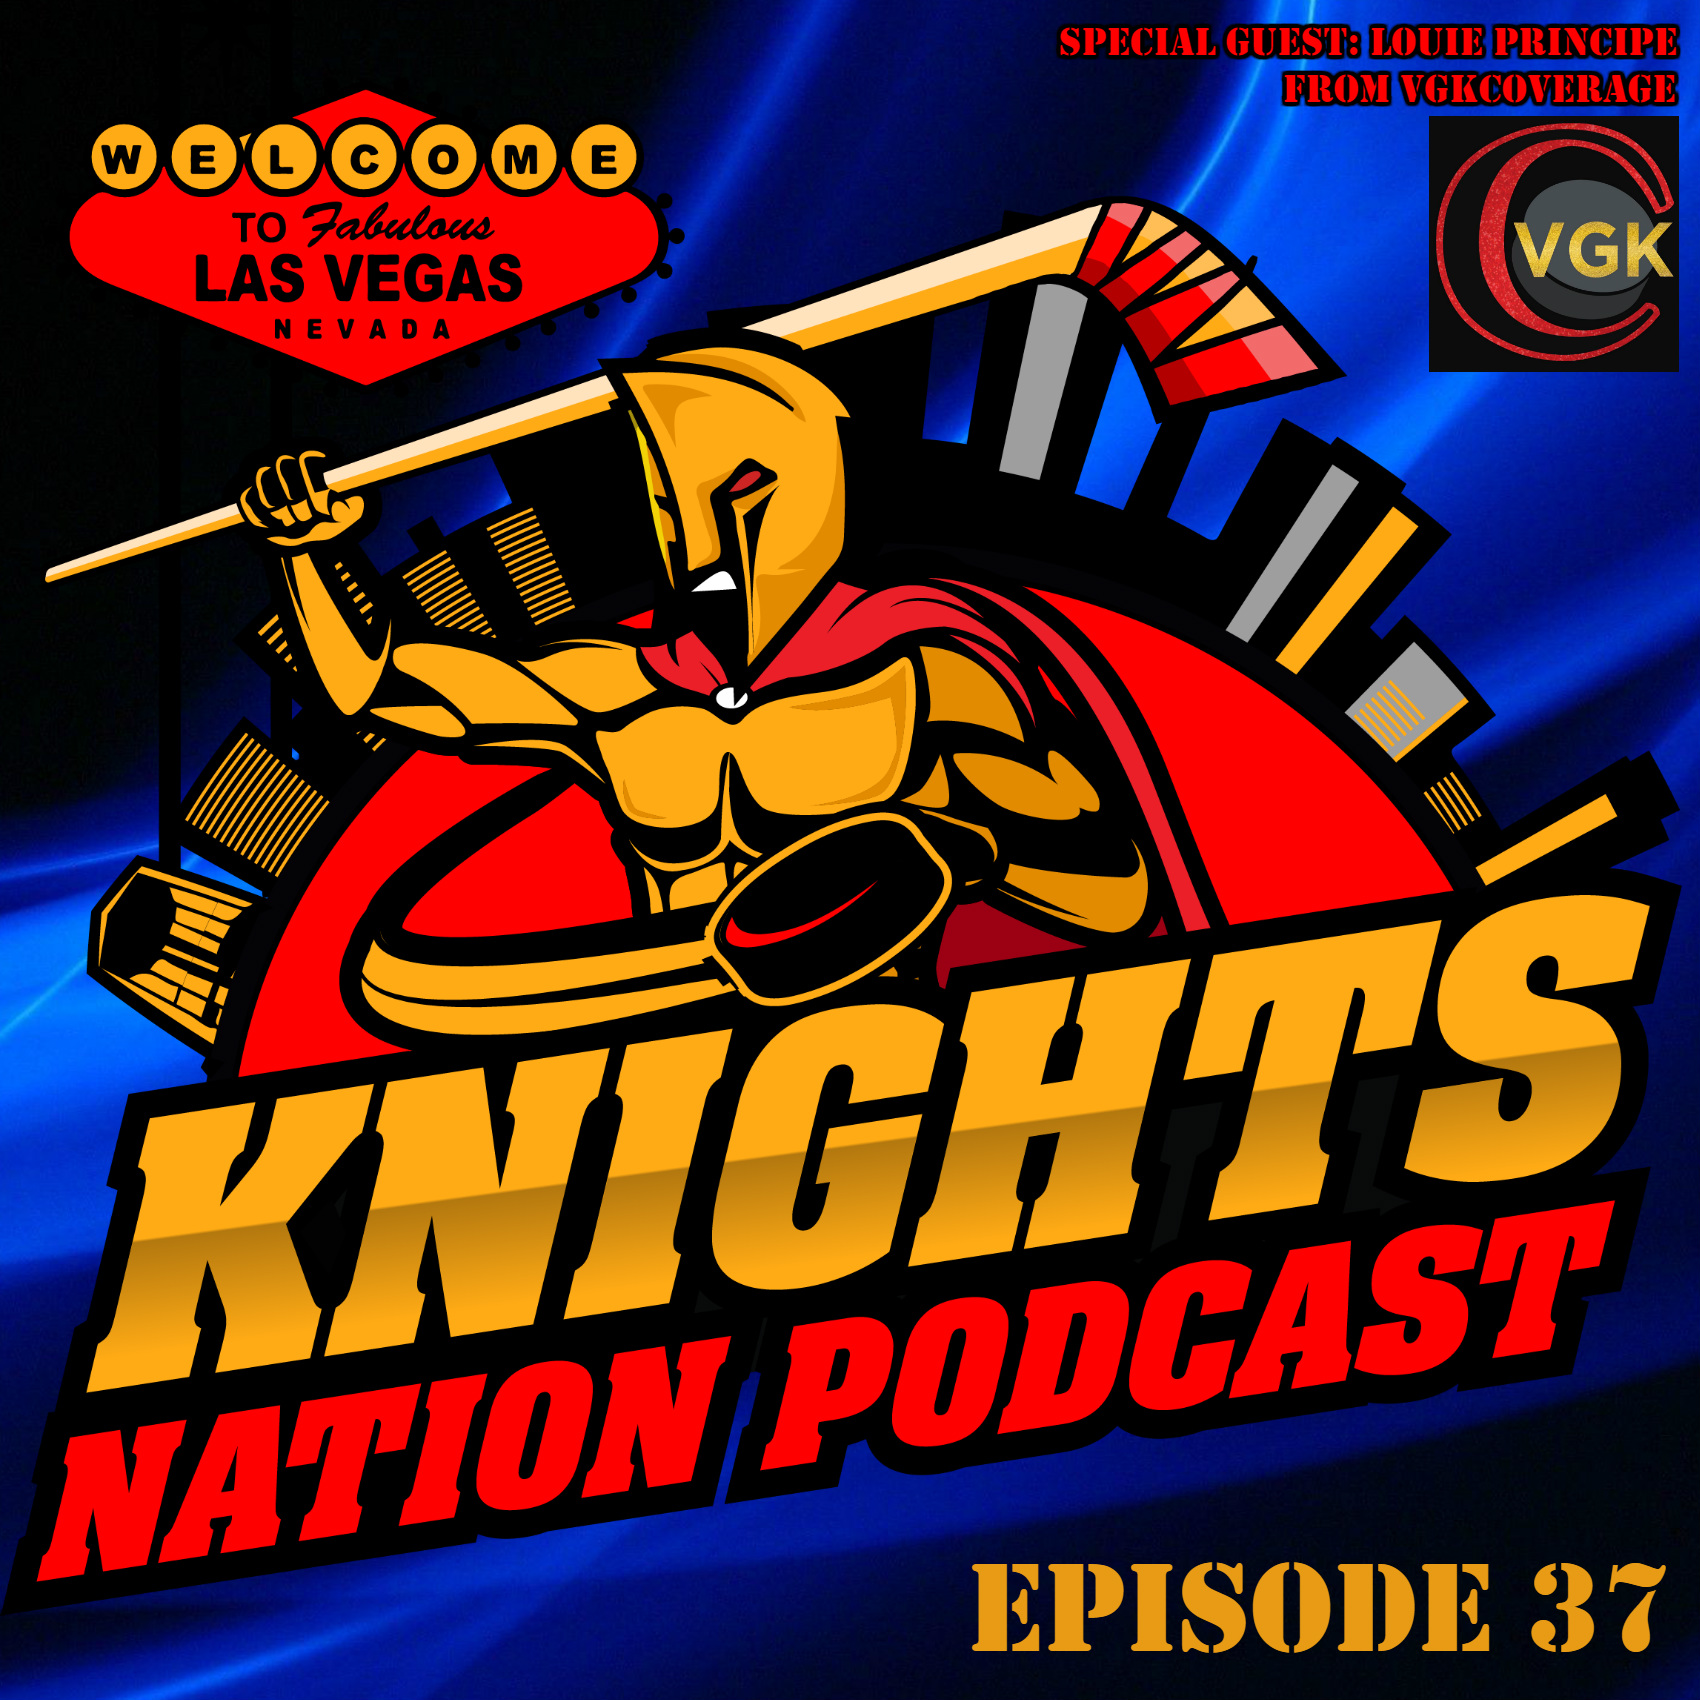 Episode 37: Whats wrong with the Golden Knights? Will they be healthy and ready for the playoffs?